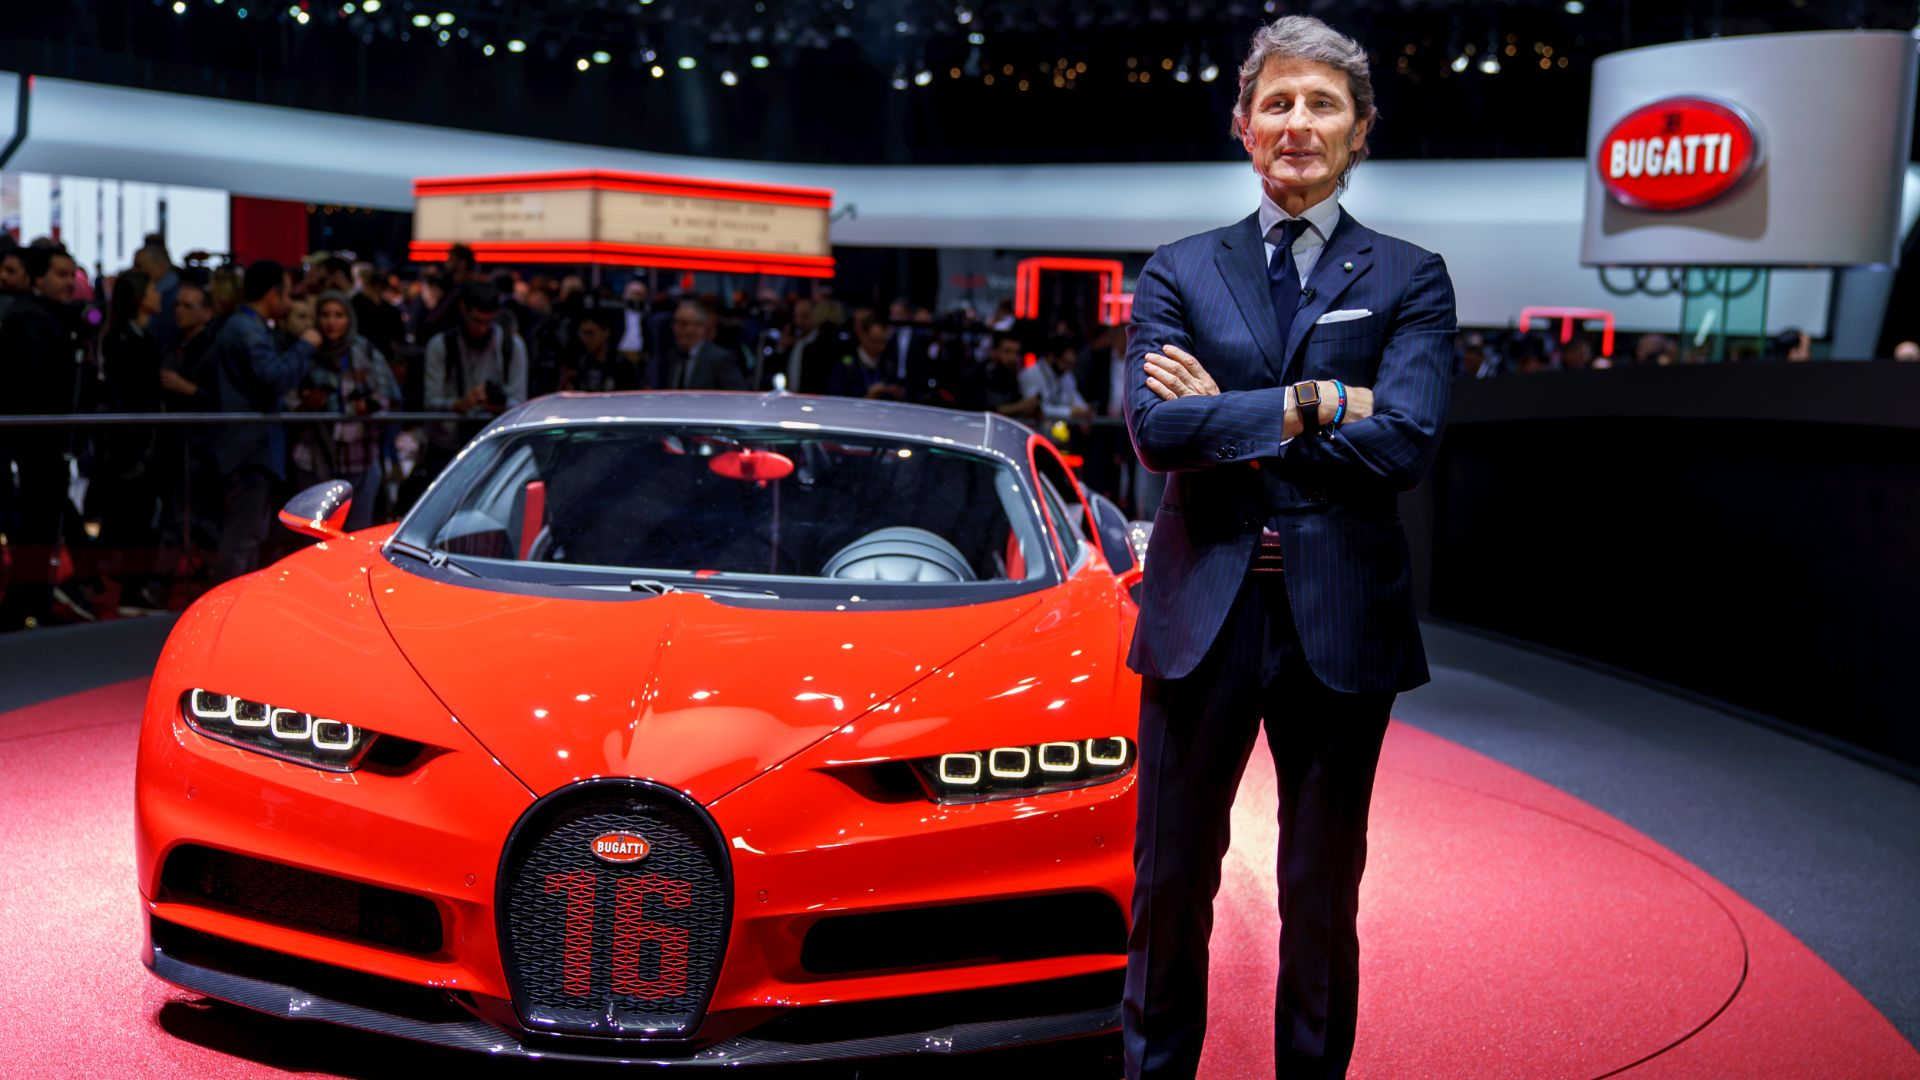 Bugatti won't build an SUV